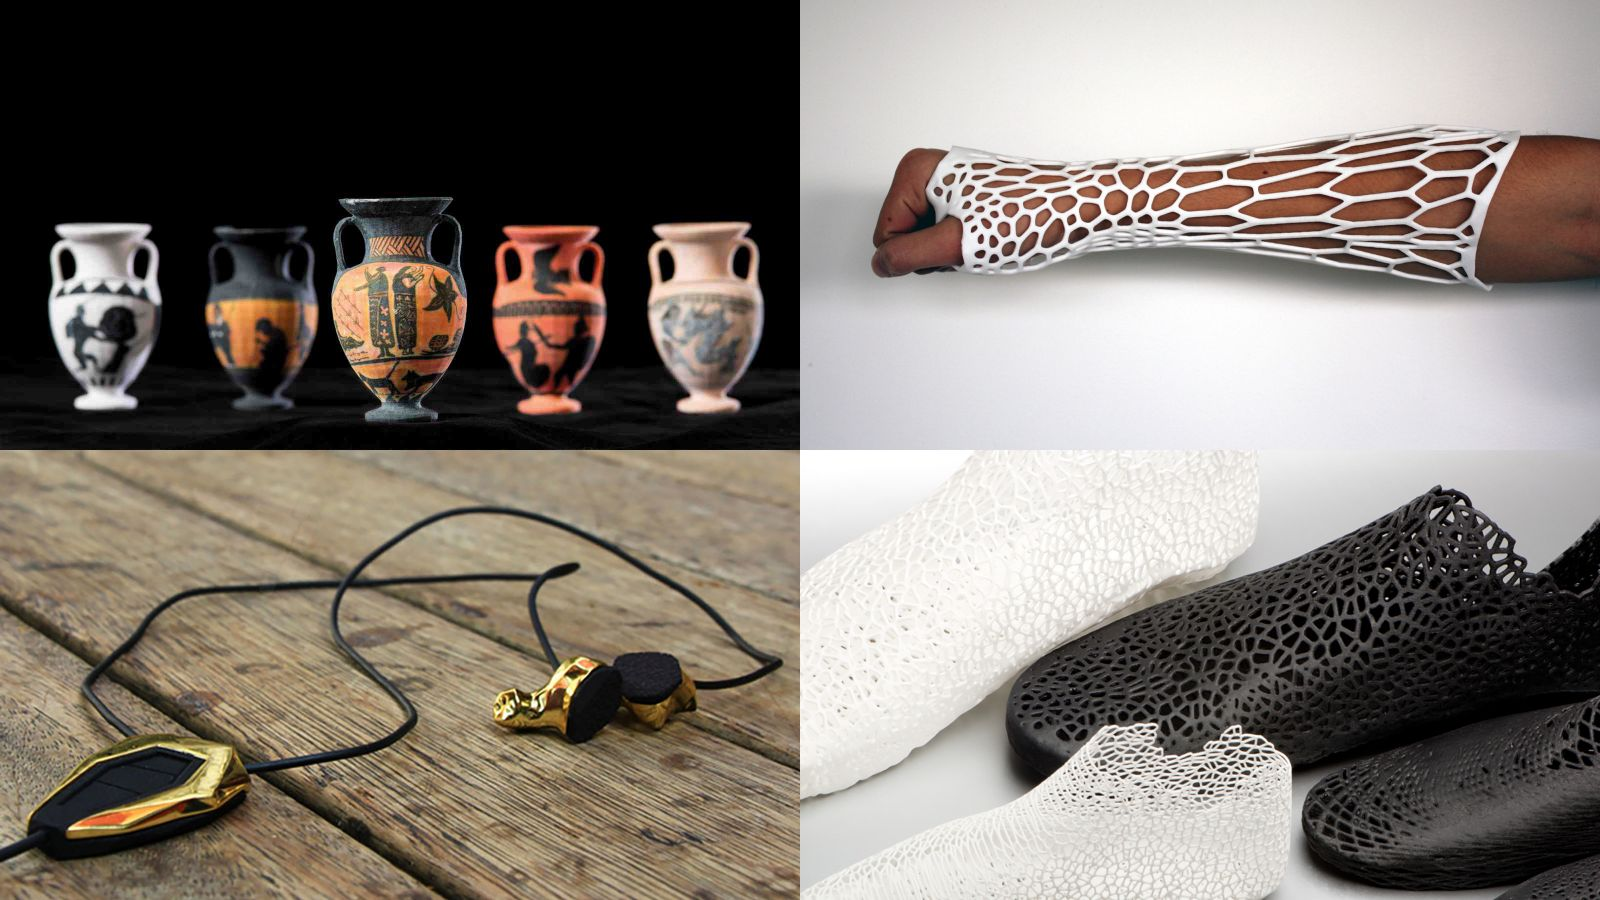 3d printed items: amphorae, a cast, fitted shoes, and headphones